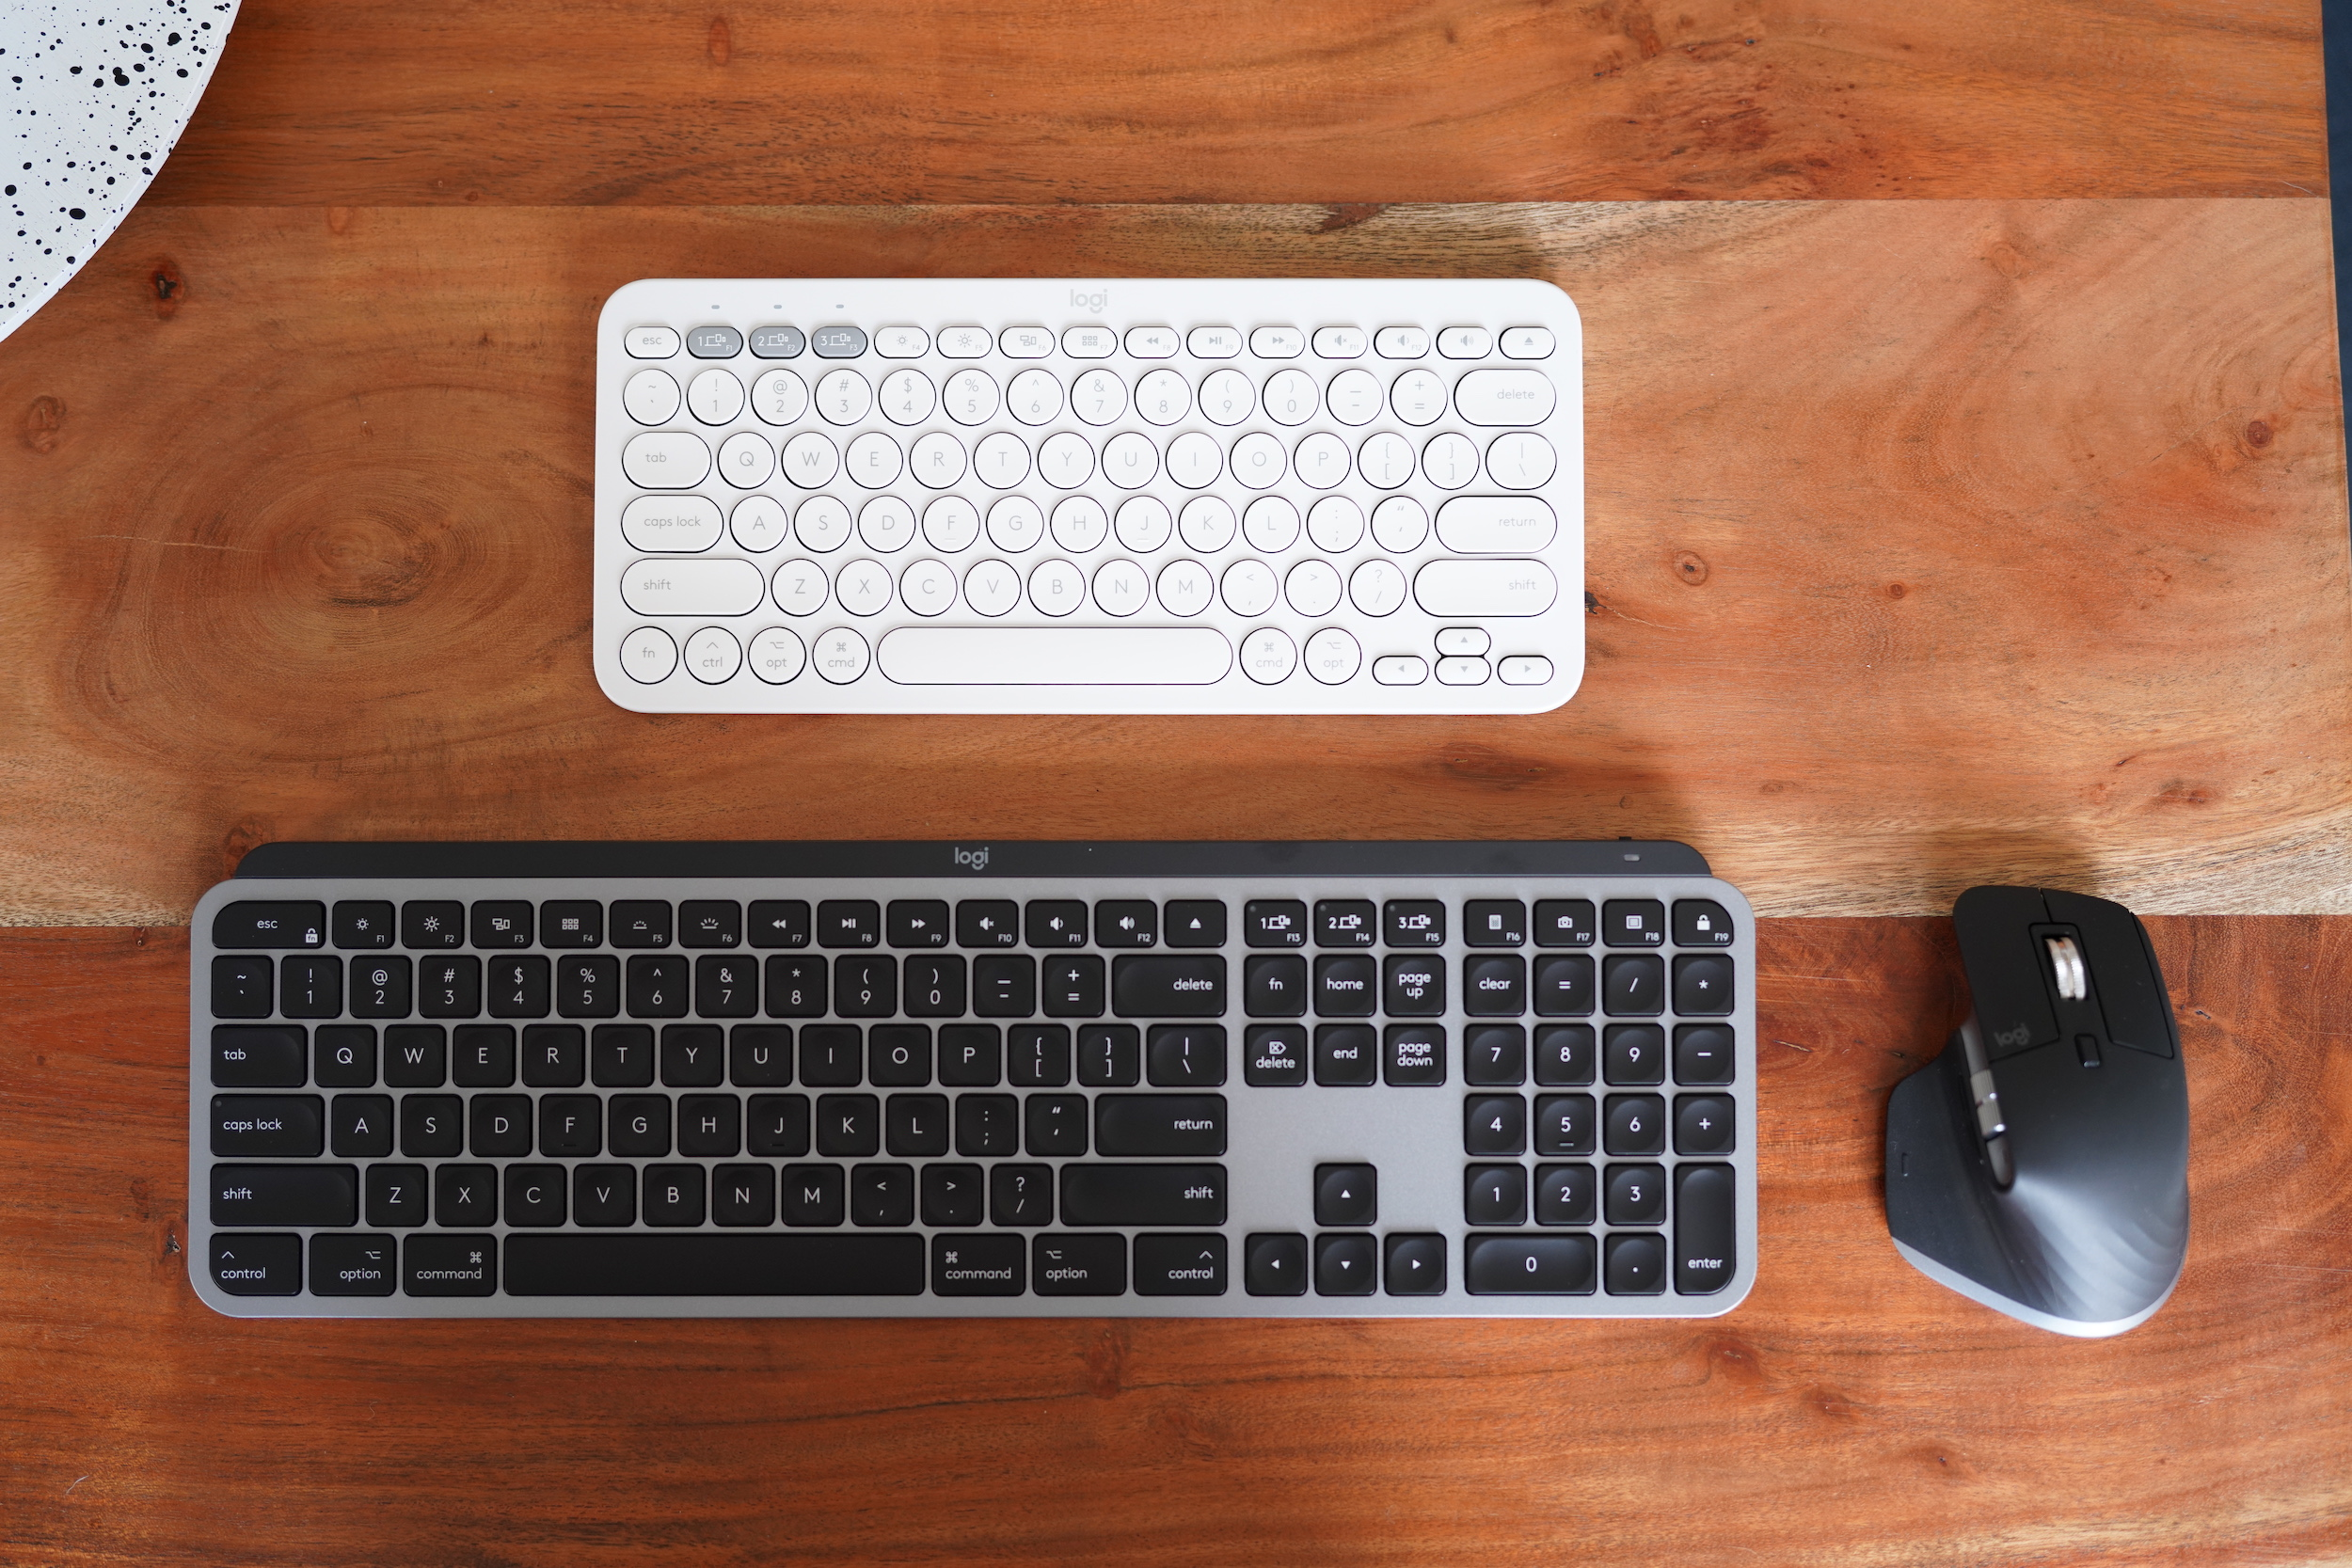 Logitech S New Mac Specific Mouse And Keyboards Are The New Best Choices For Mac Input Devices Techcrunch